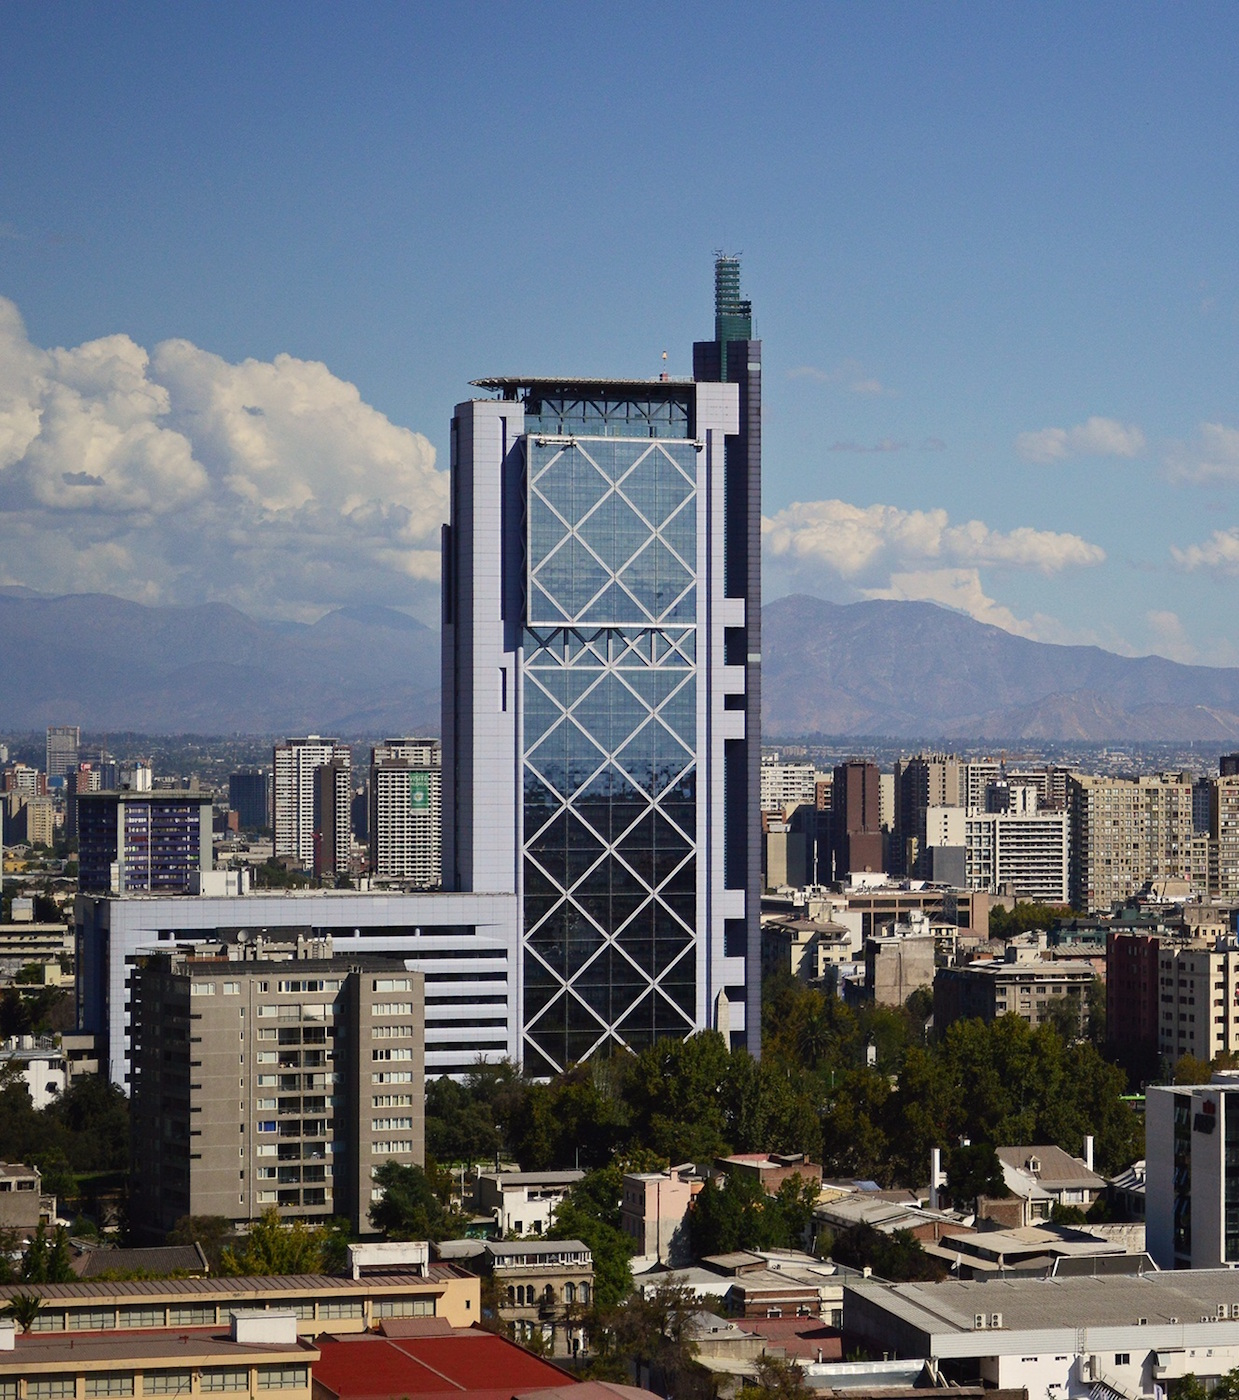 Torre Telefónica in Santiago, Chile (photo by Klausiee/Wikimedia)